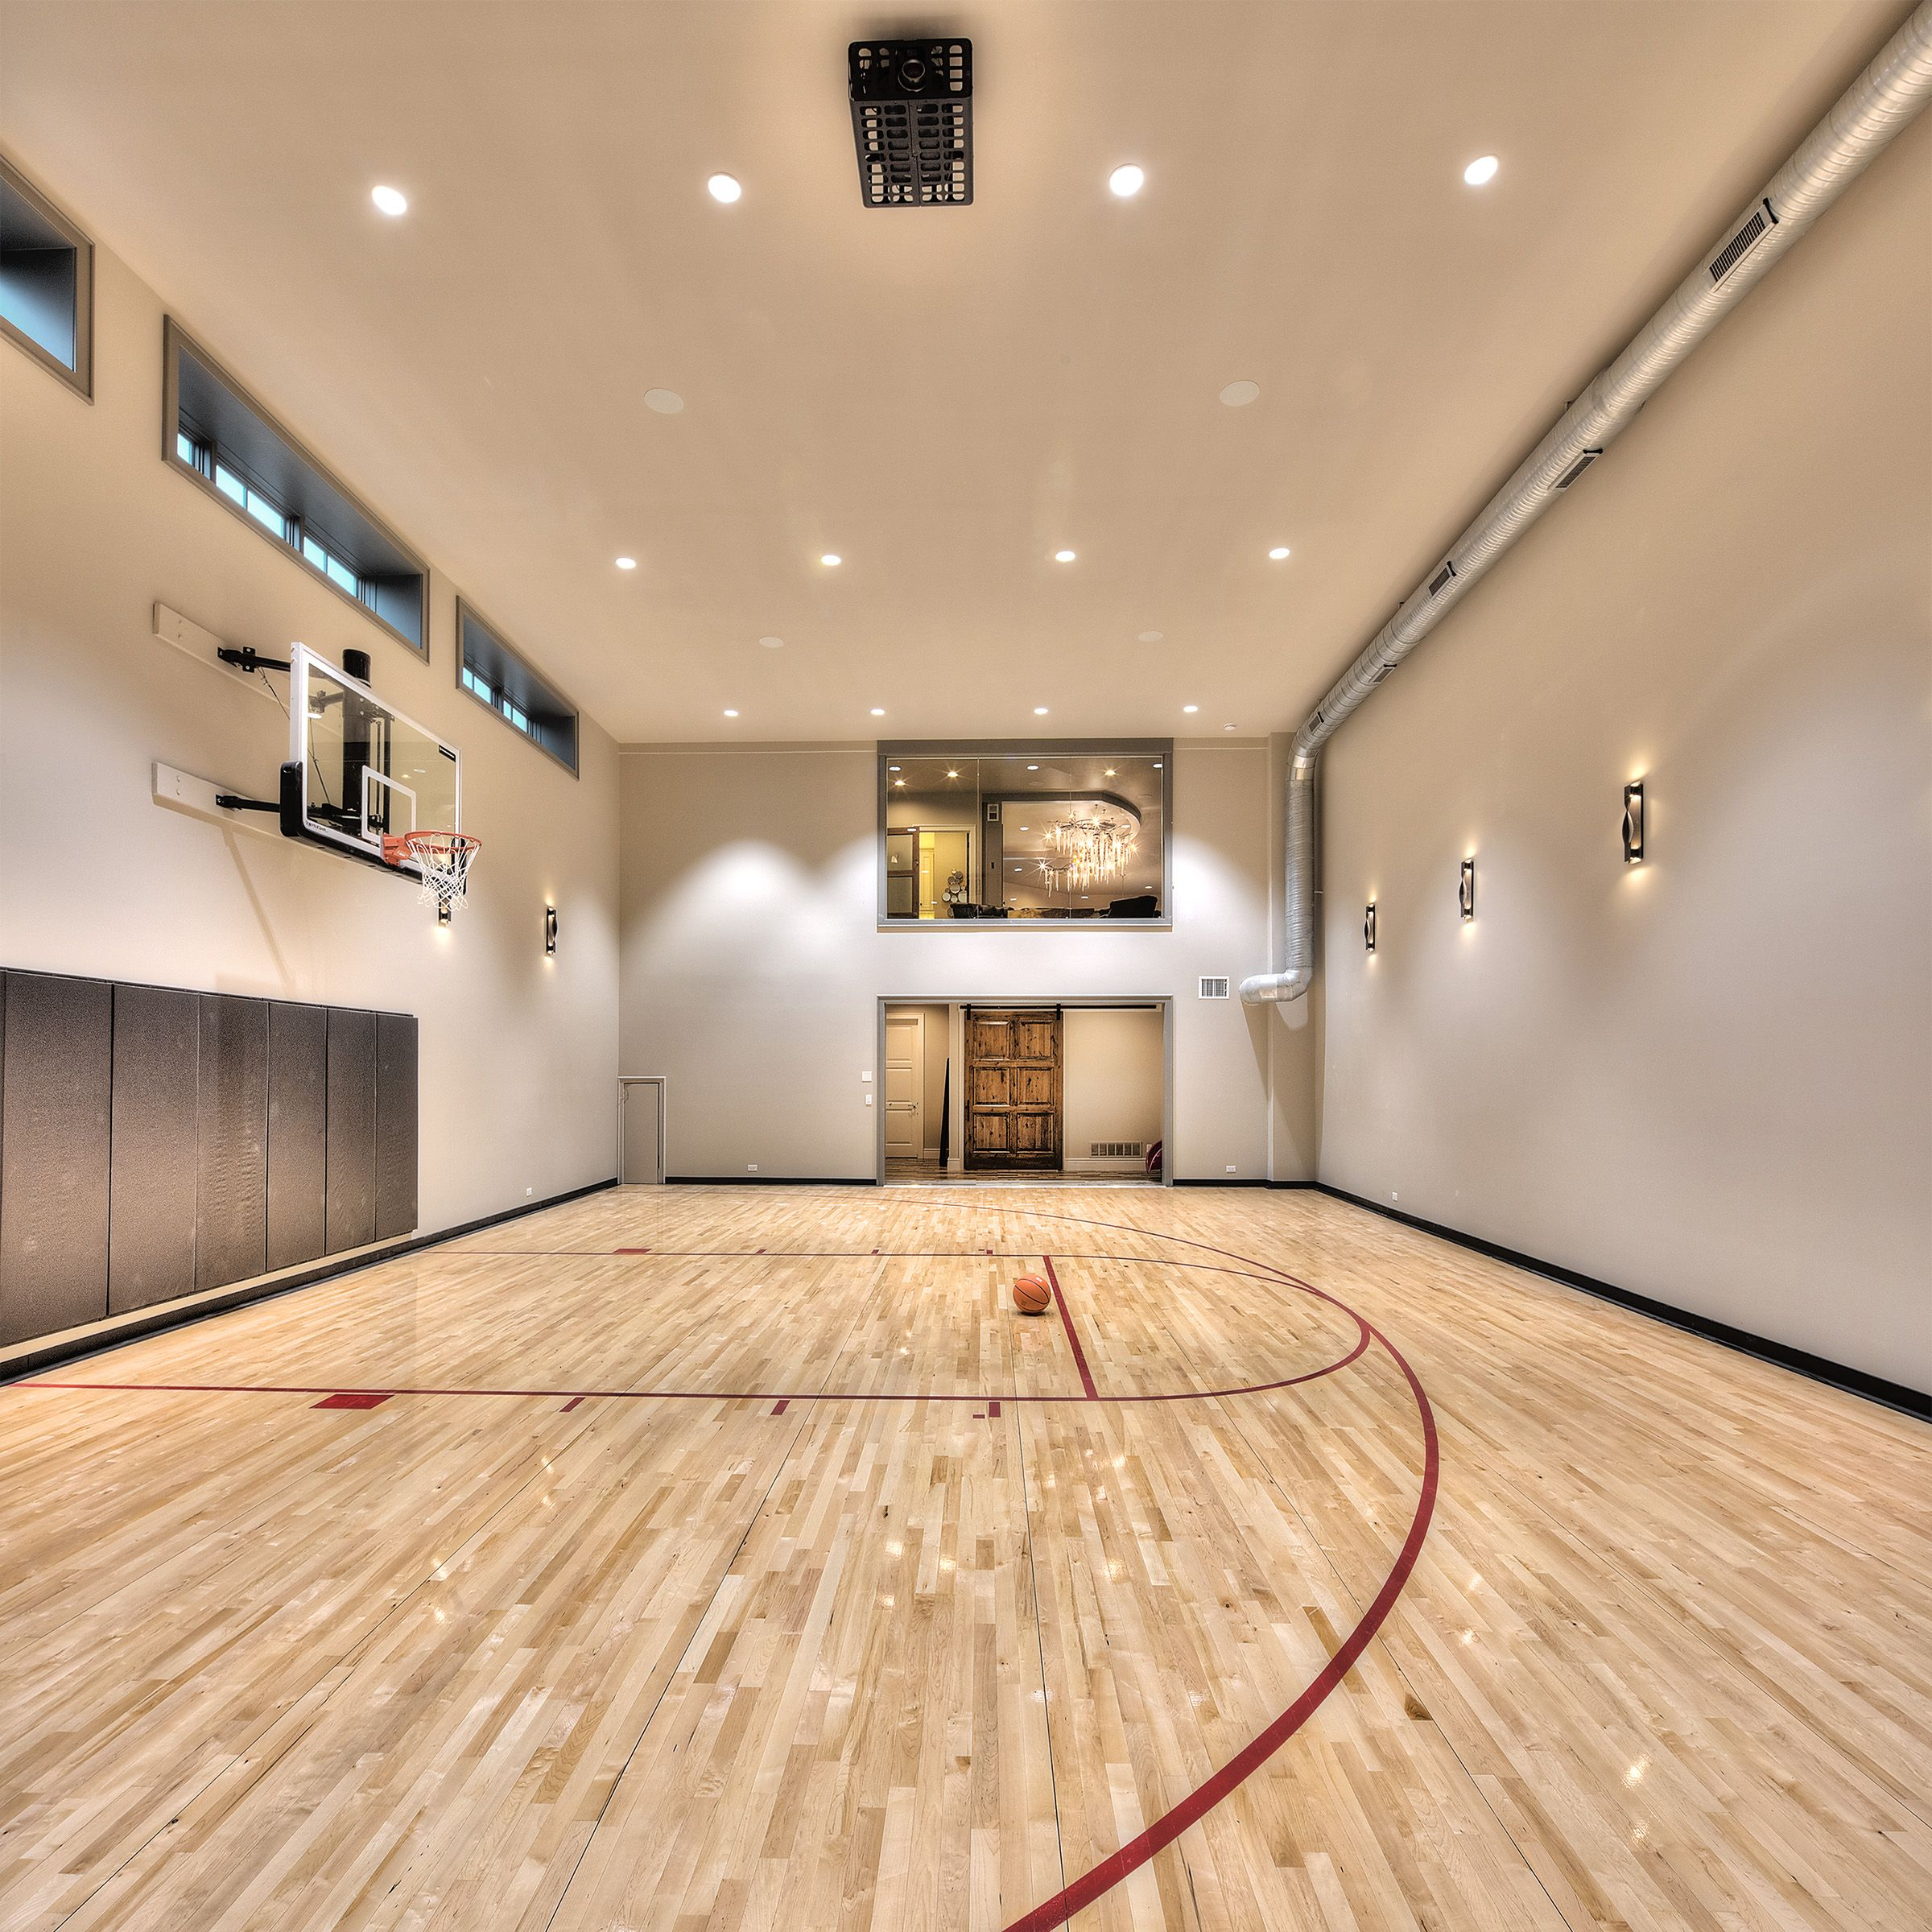 Home basketball court … | Pinteres…